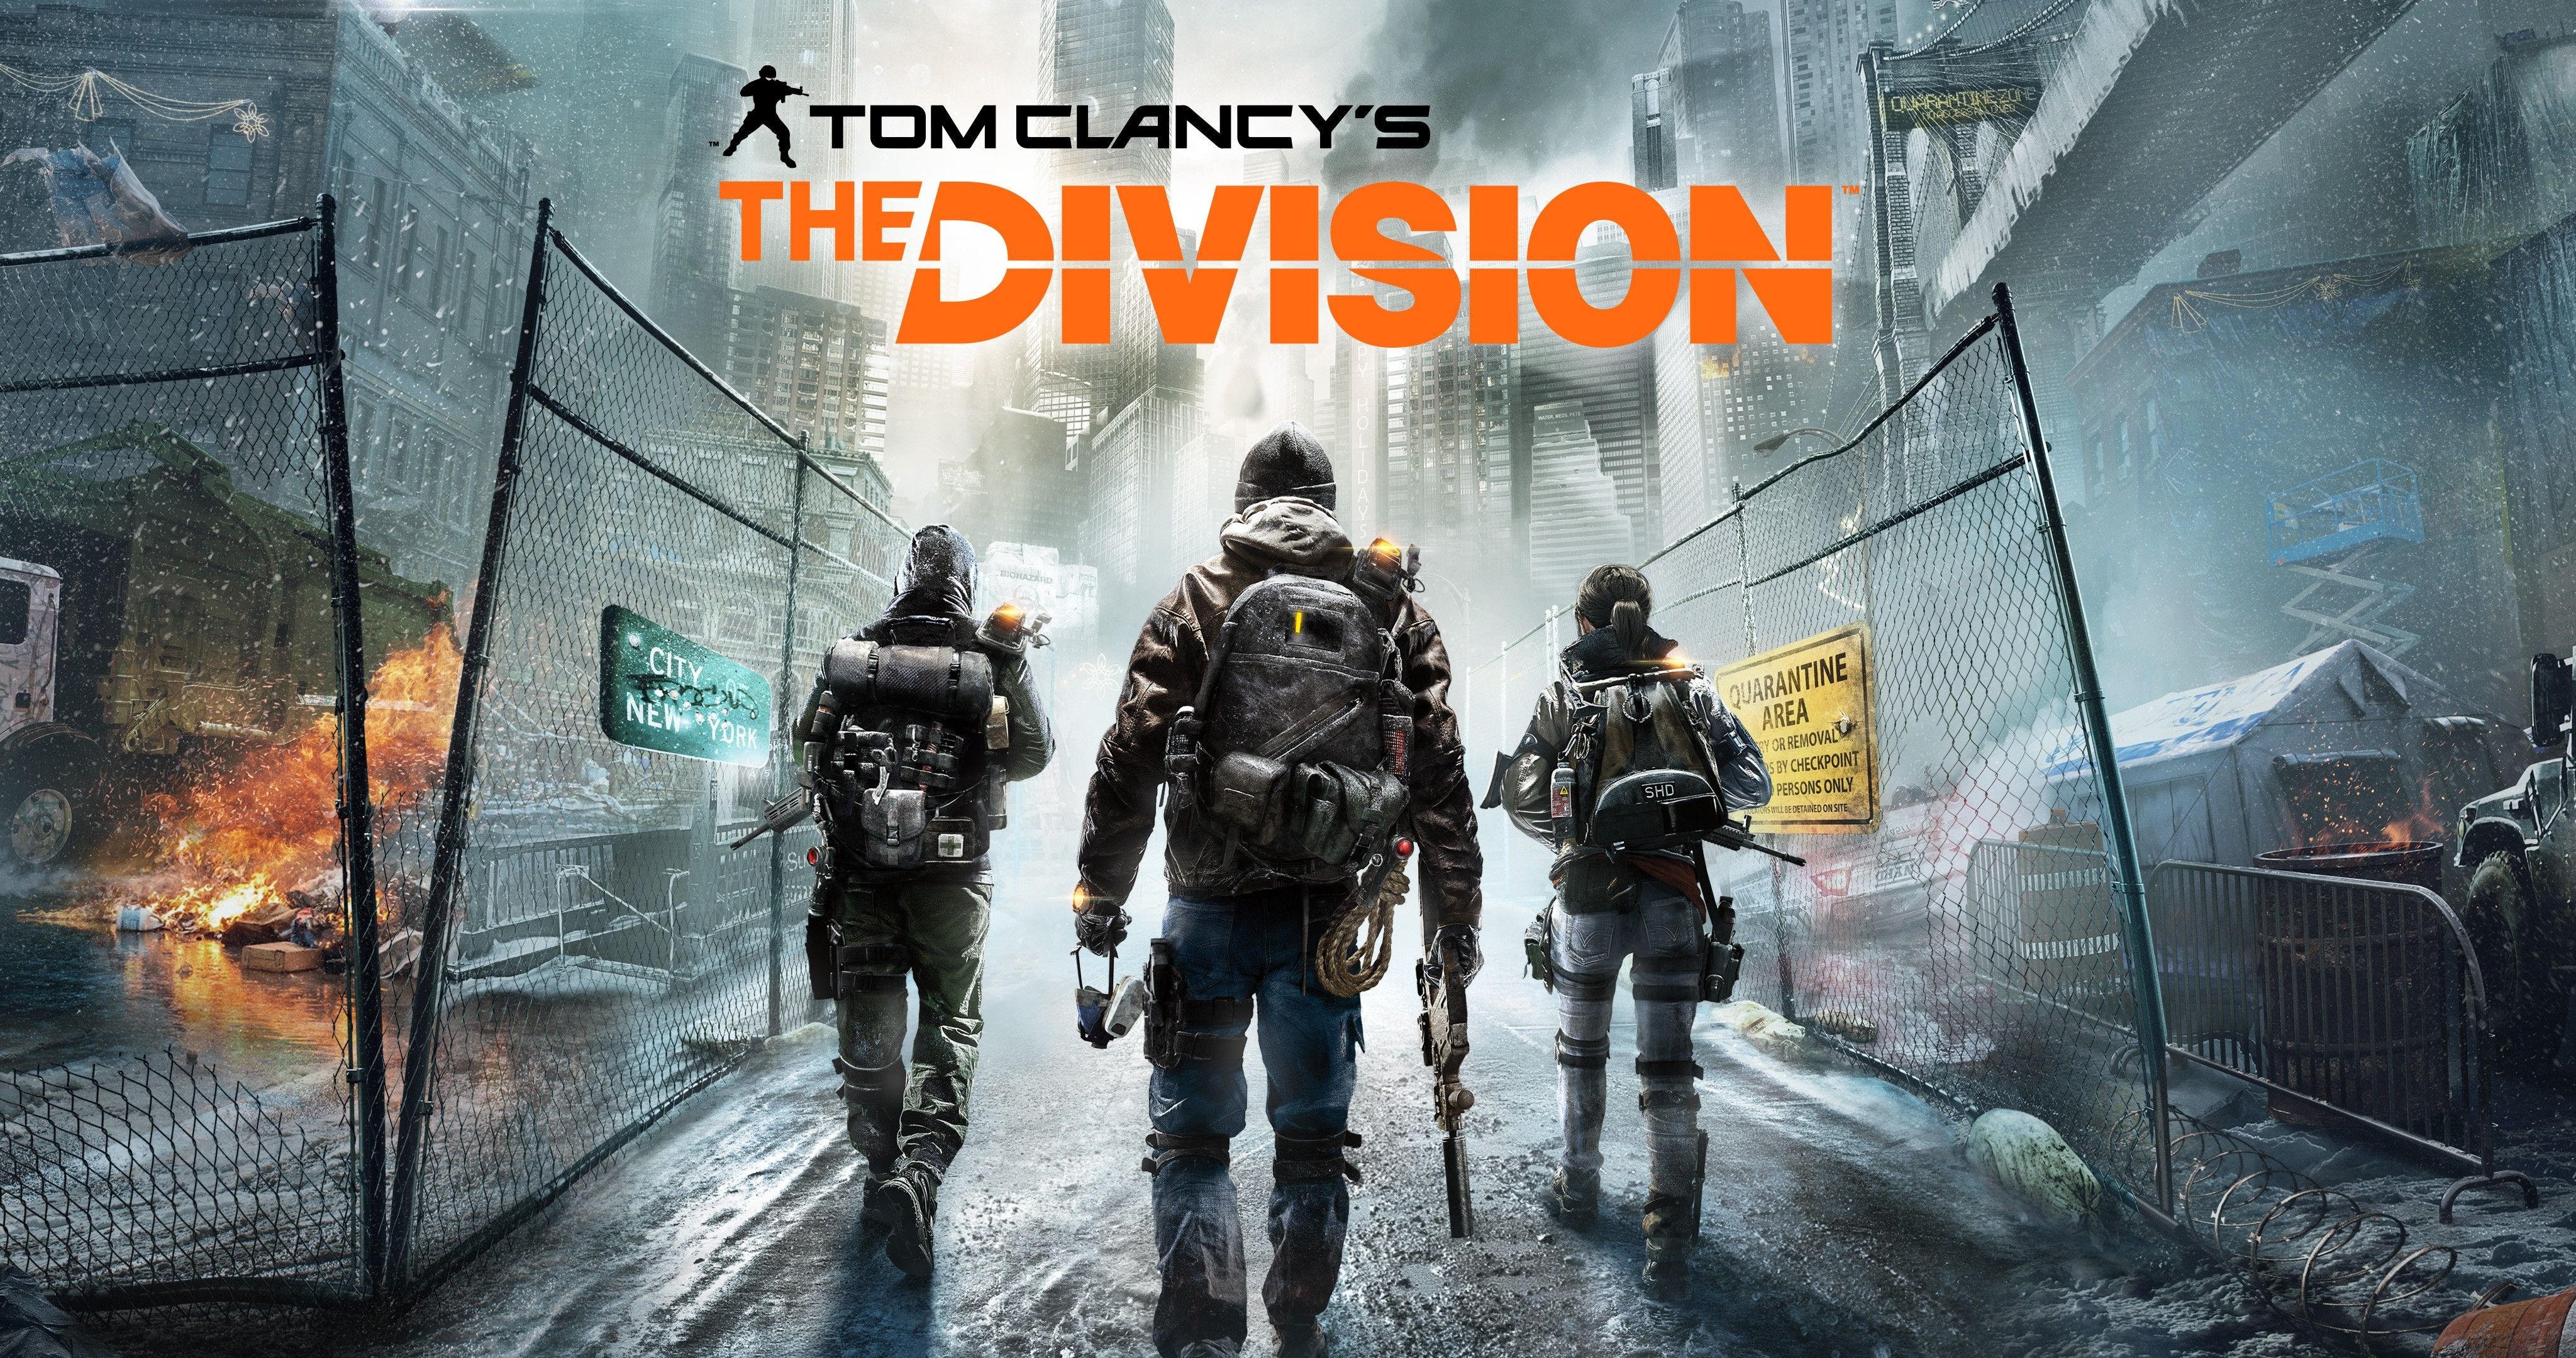 The Division 4k Wallpapers Top Free The Division 4k Backgrounds Wallpaperaccess